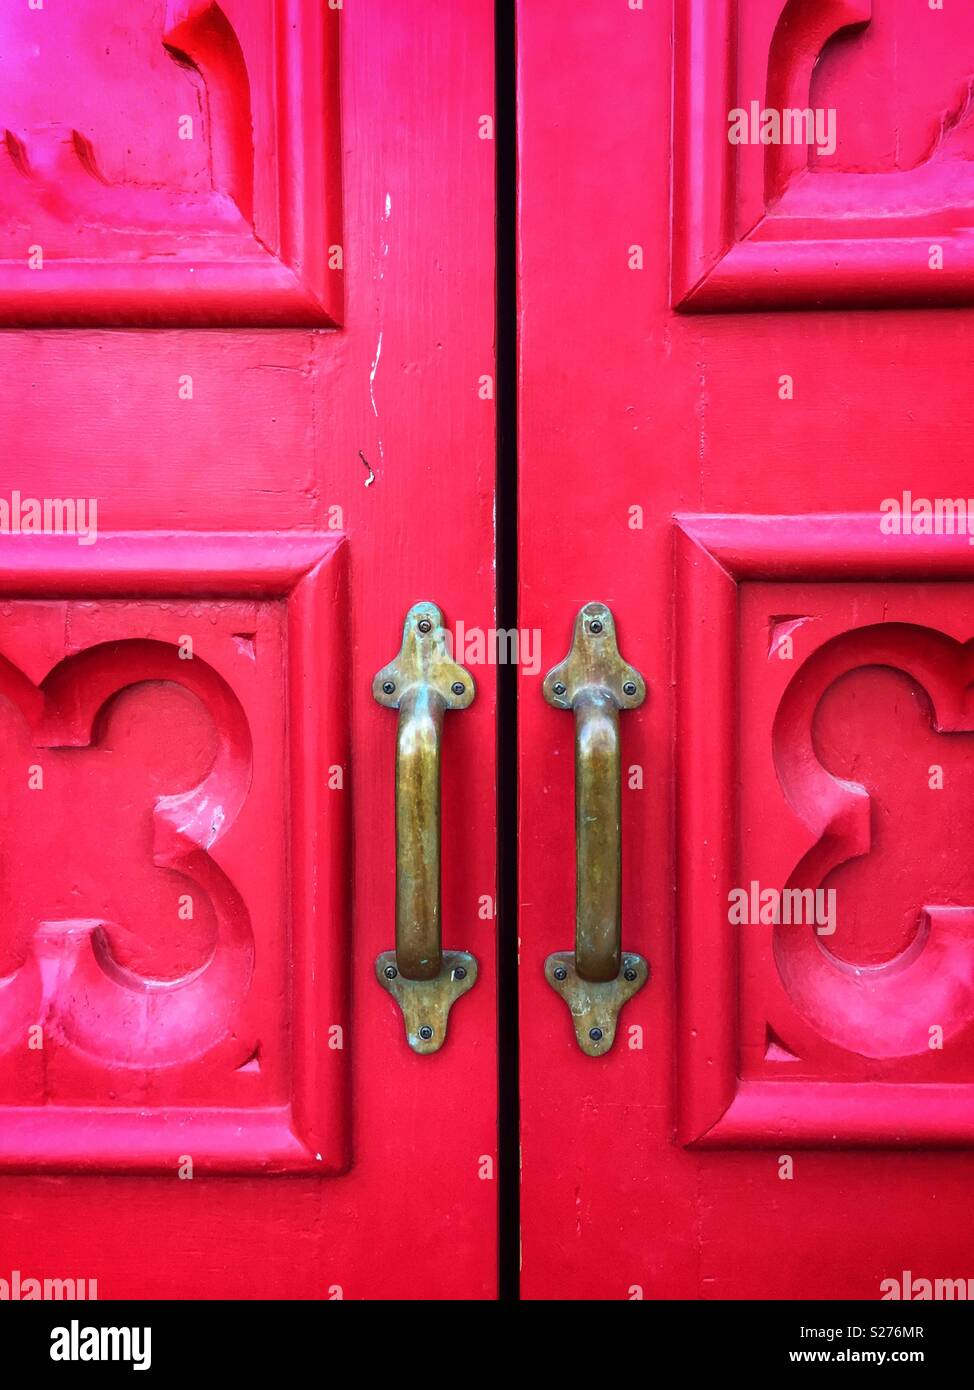 Closeup of red doors with brass handles - Stock Image